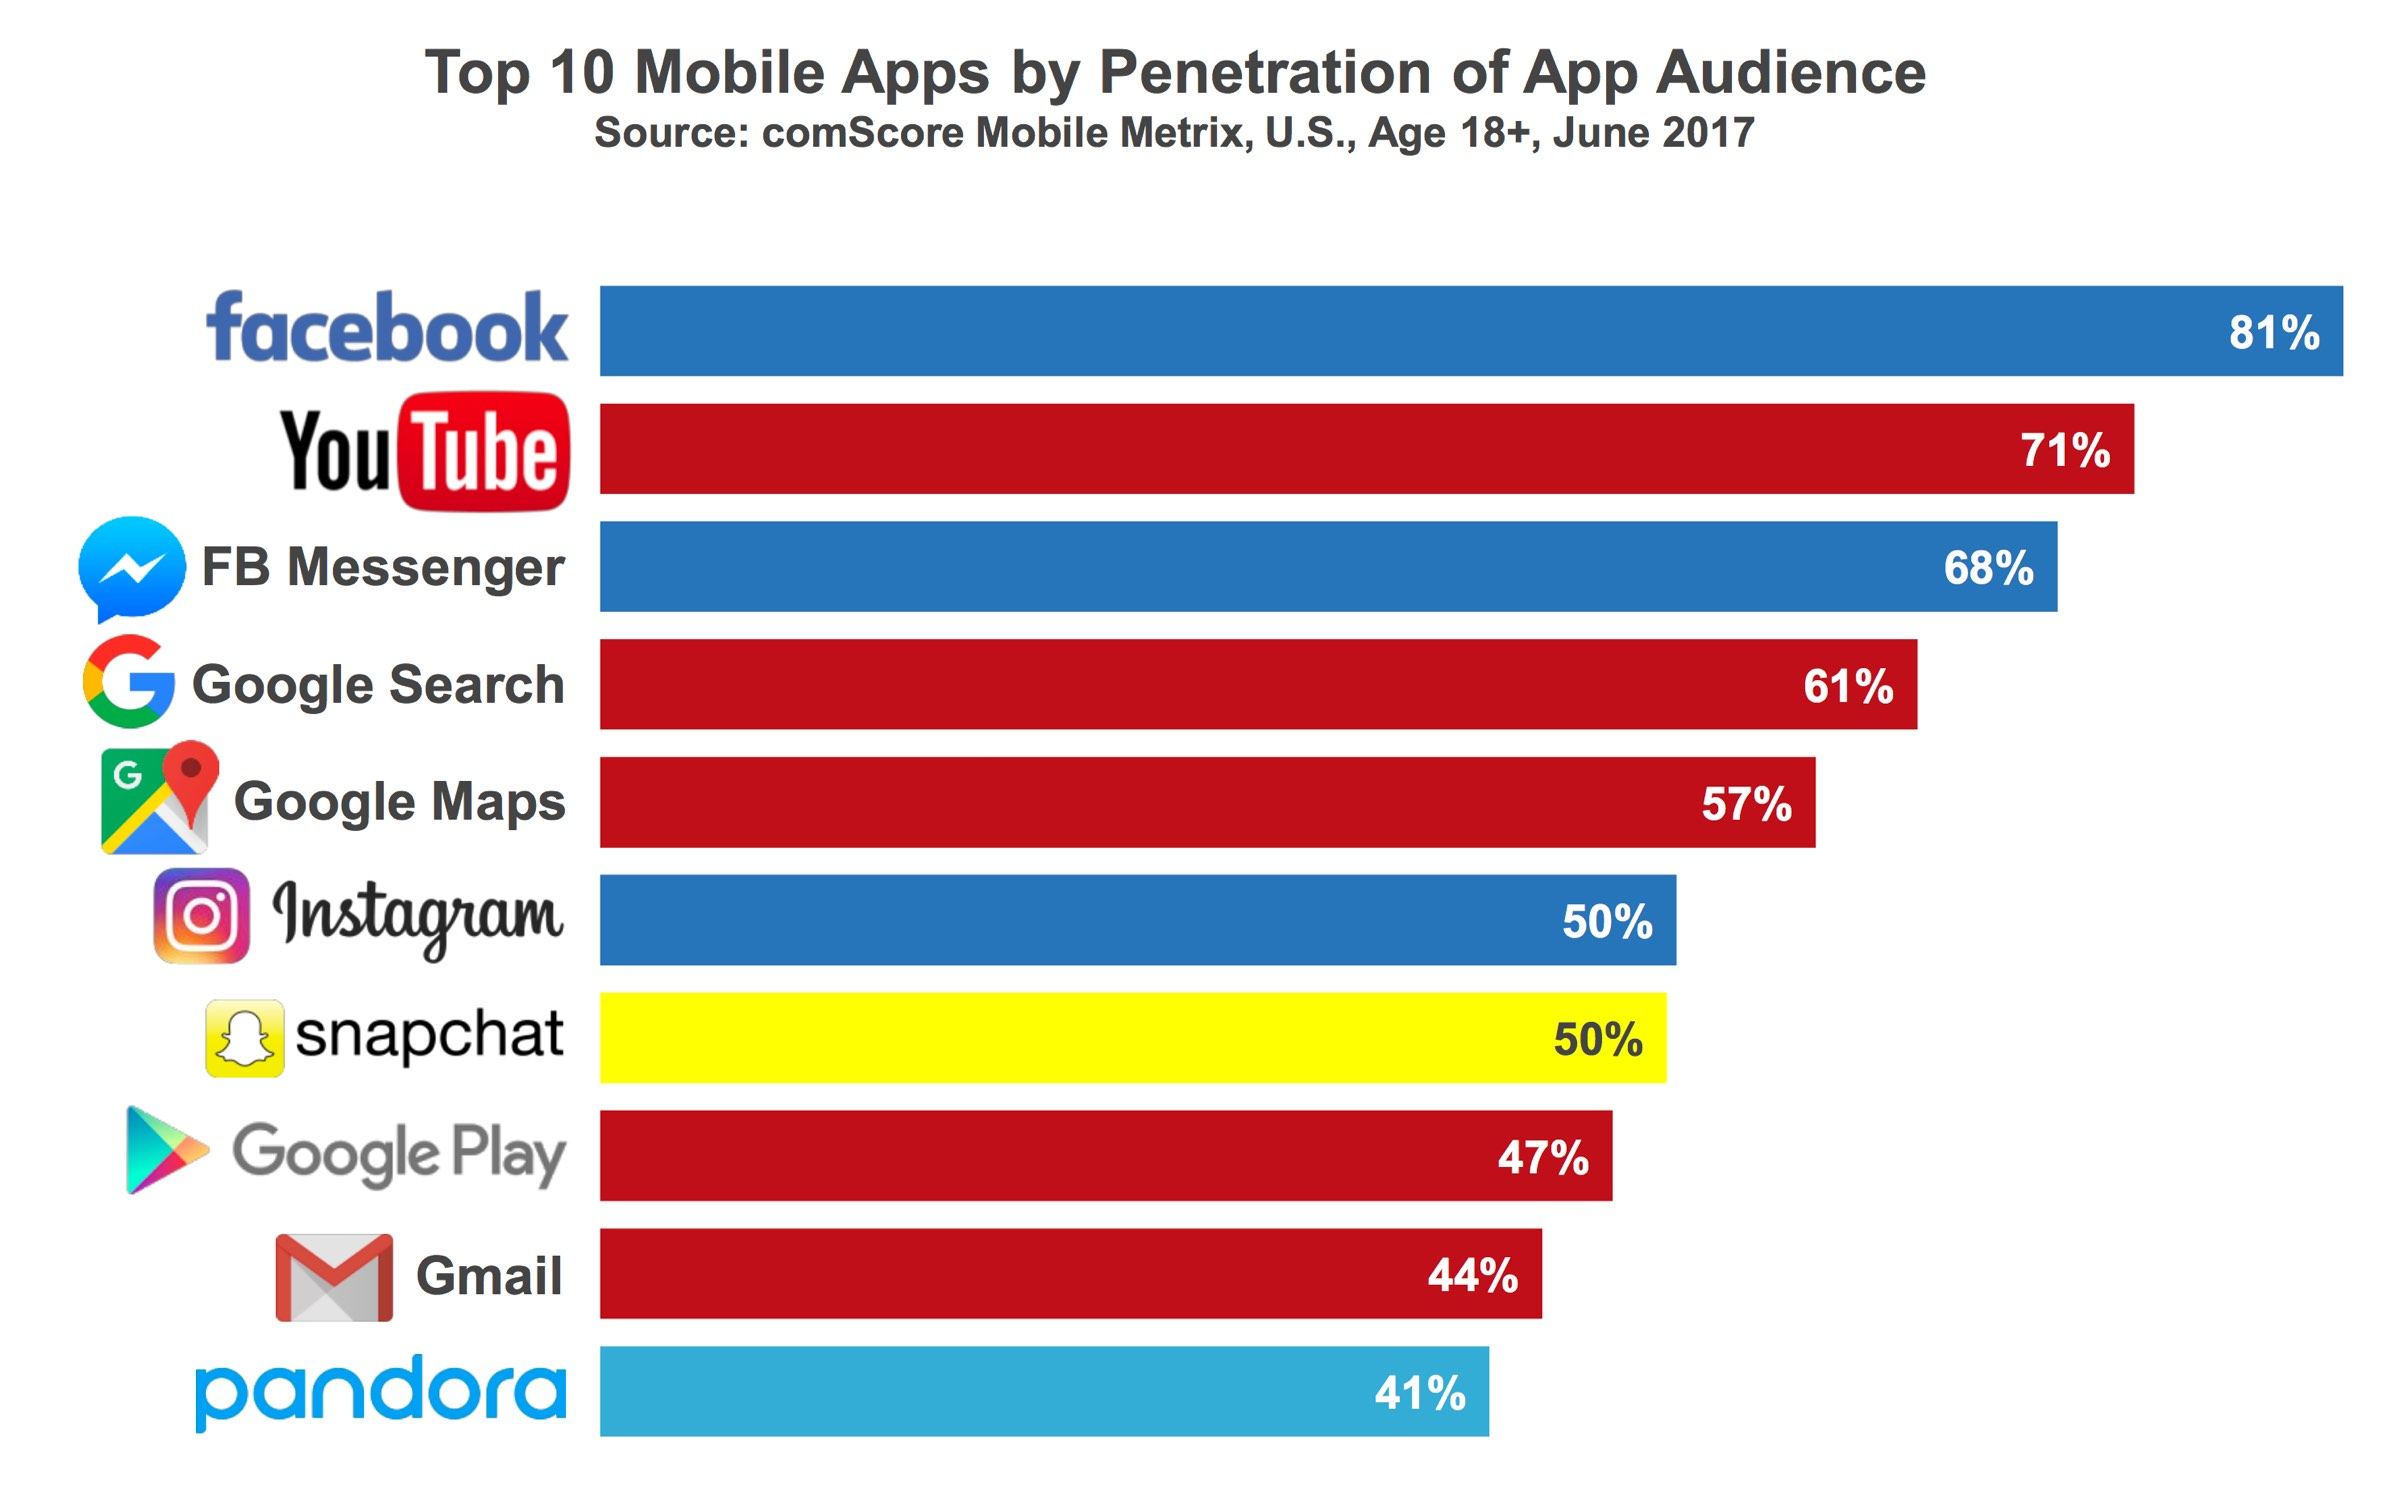 Top 10 mobile apps by penetration of app audience, 2017